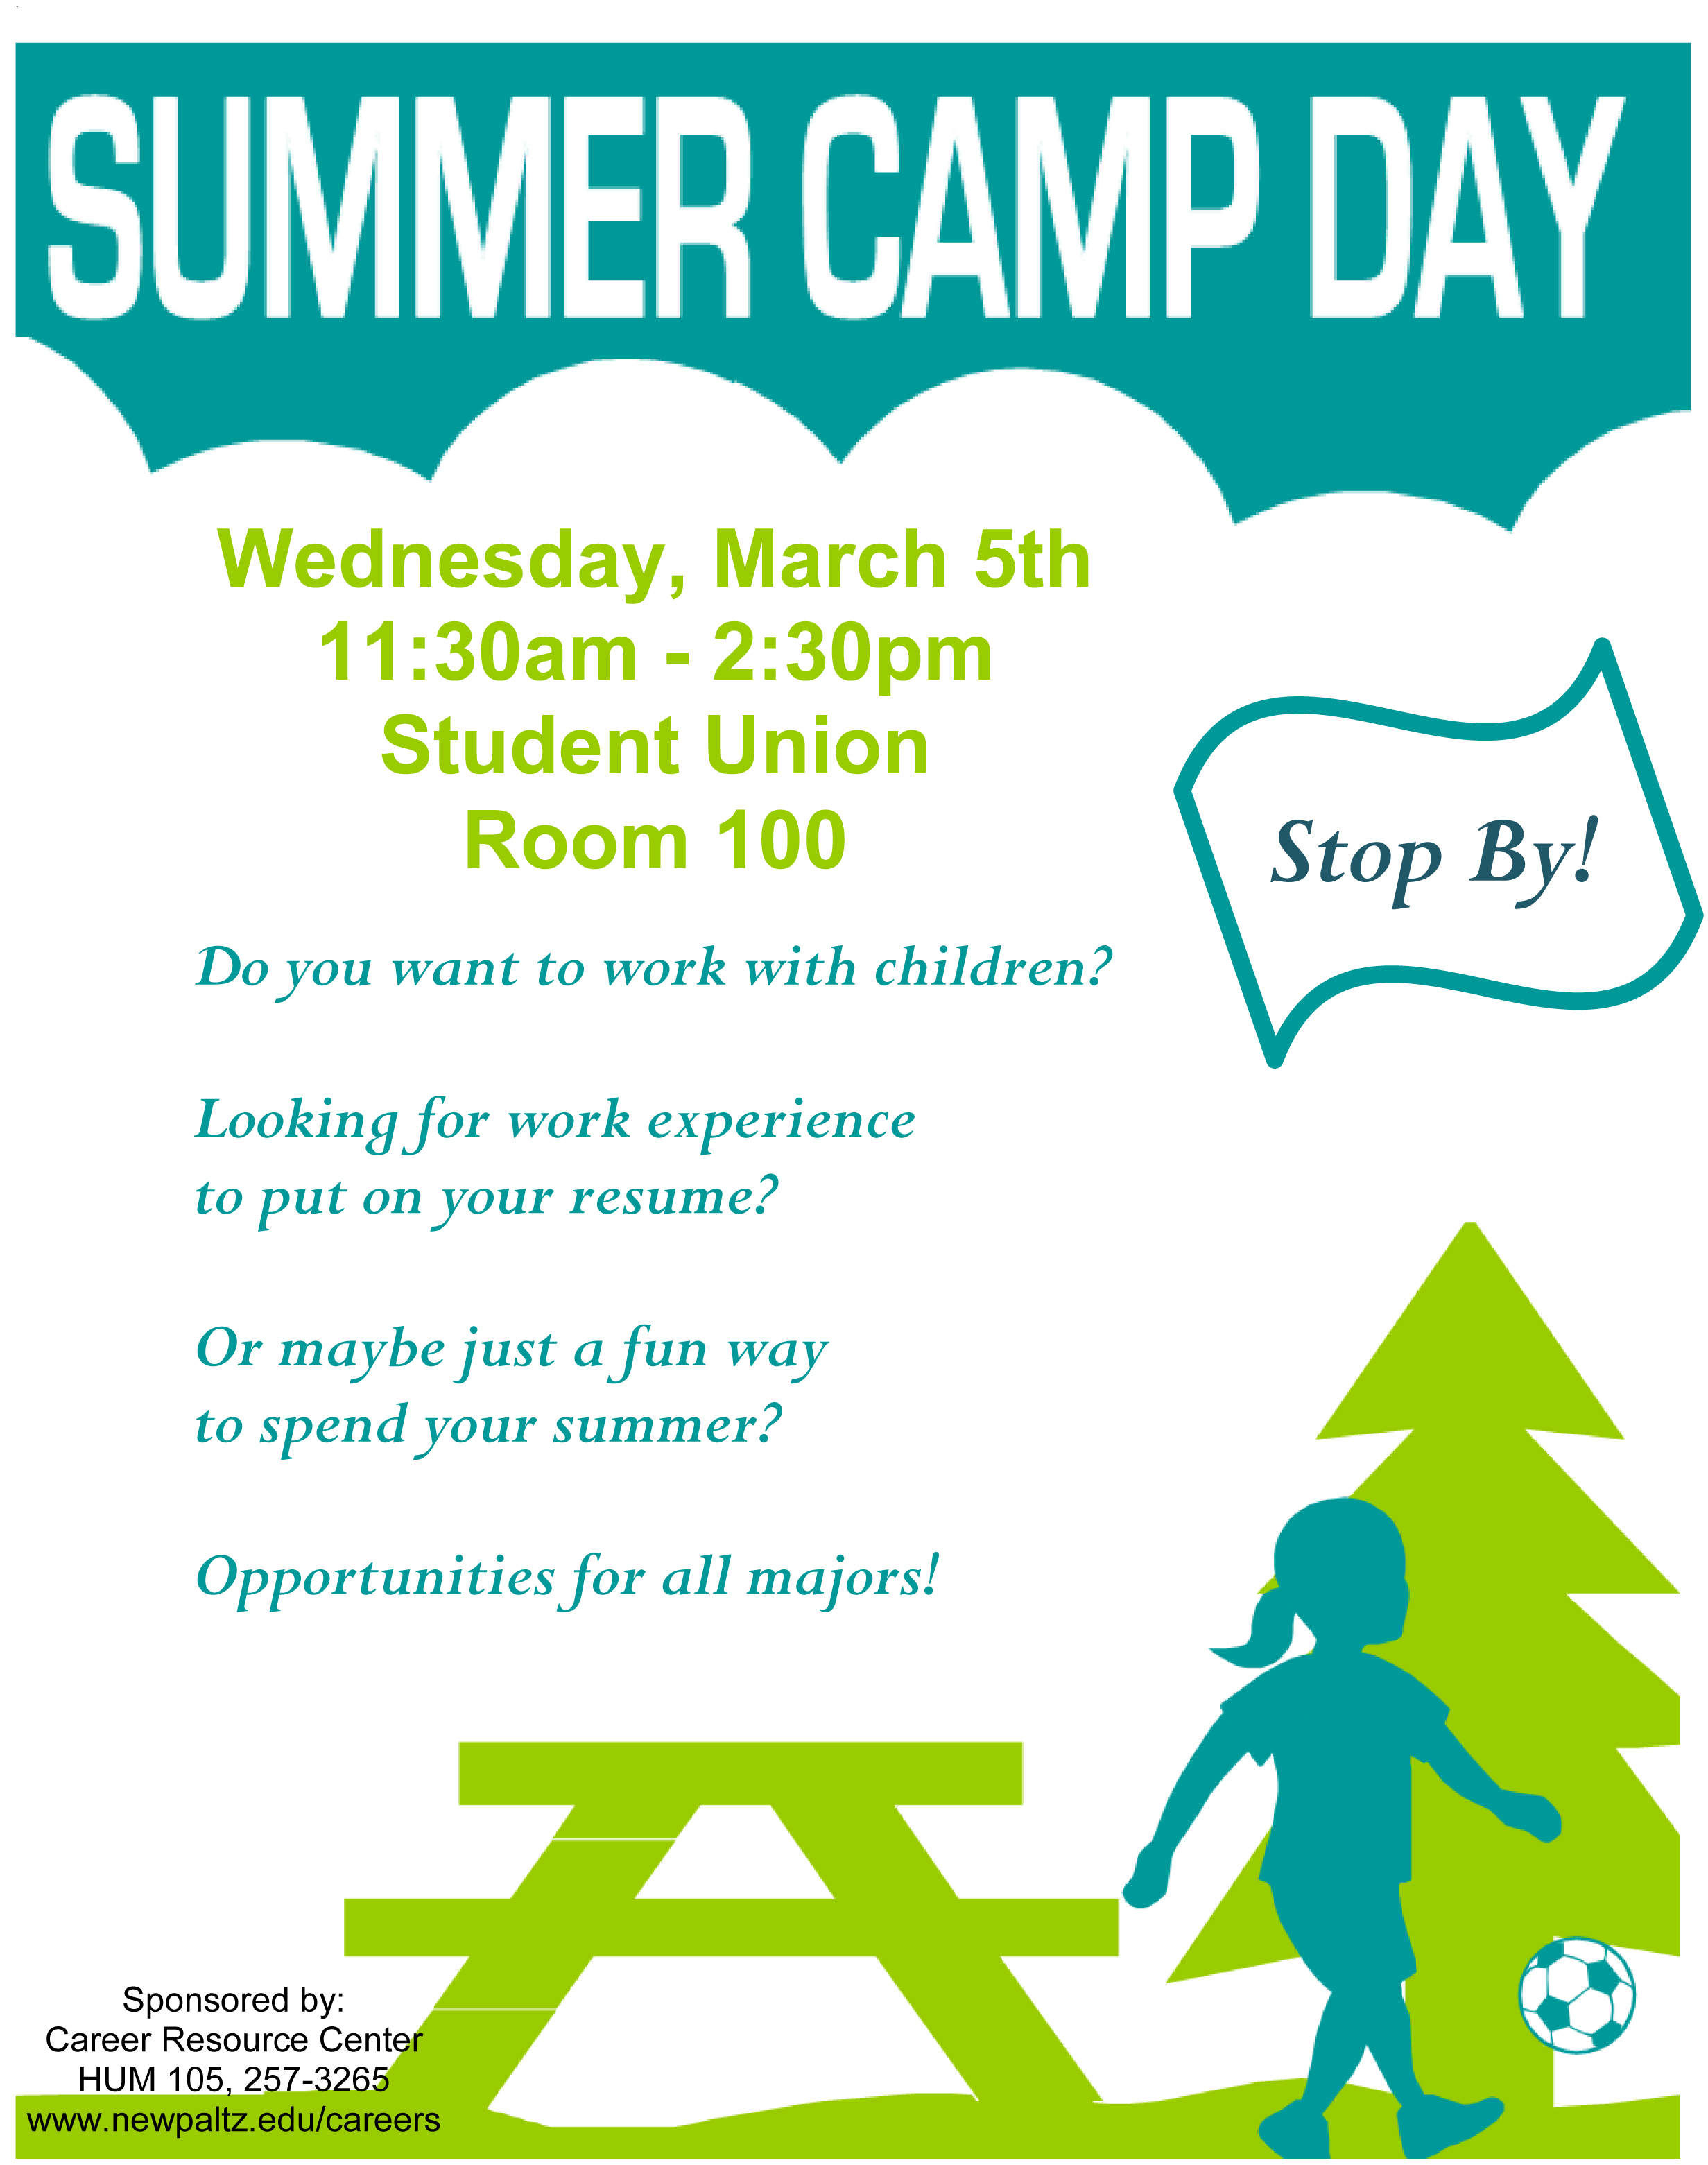 Invitation Letter For Summer Camp Southernsoulblog Com